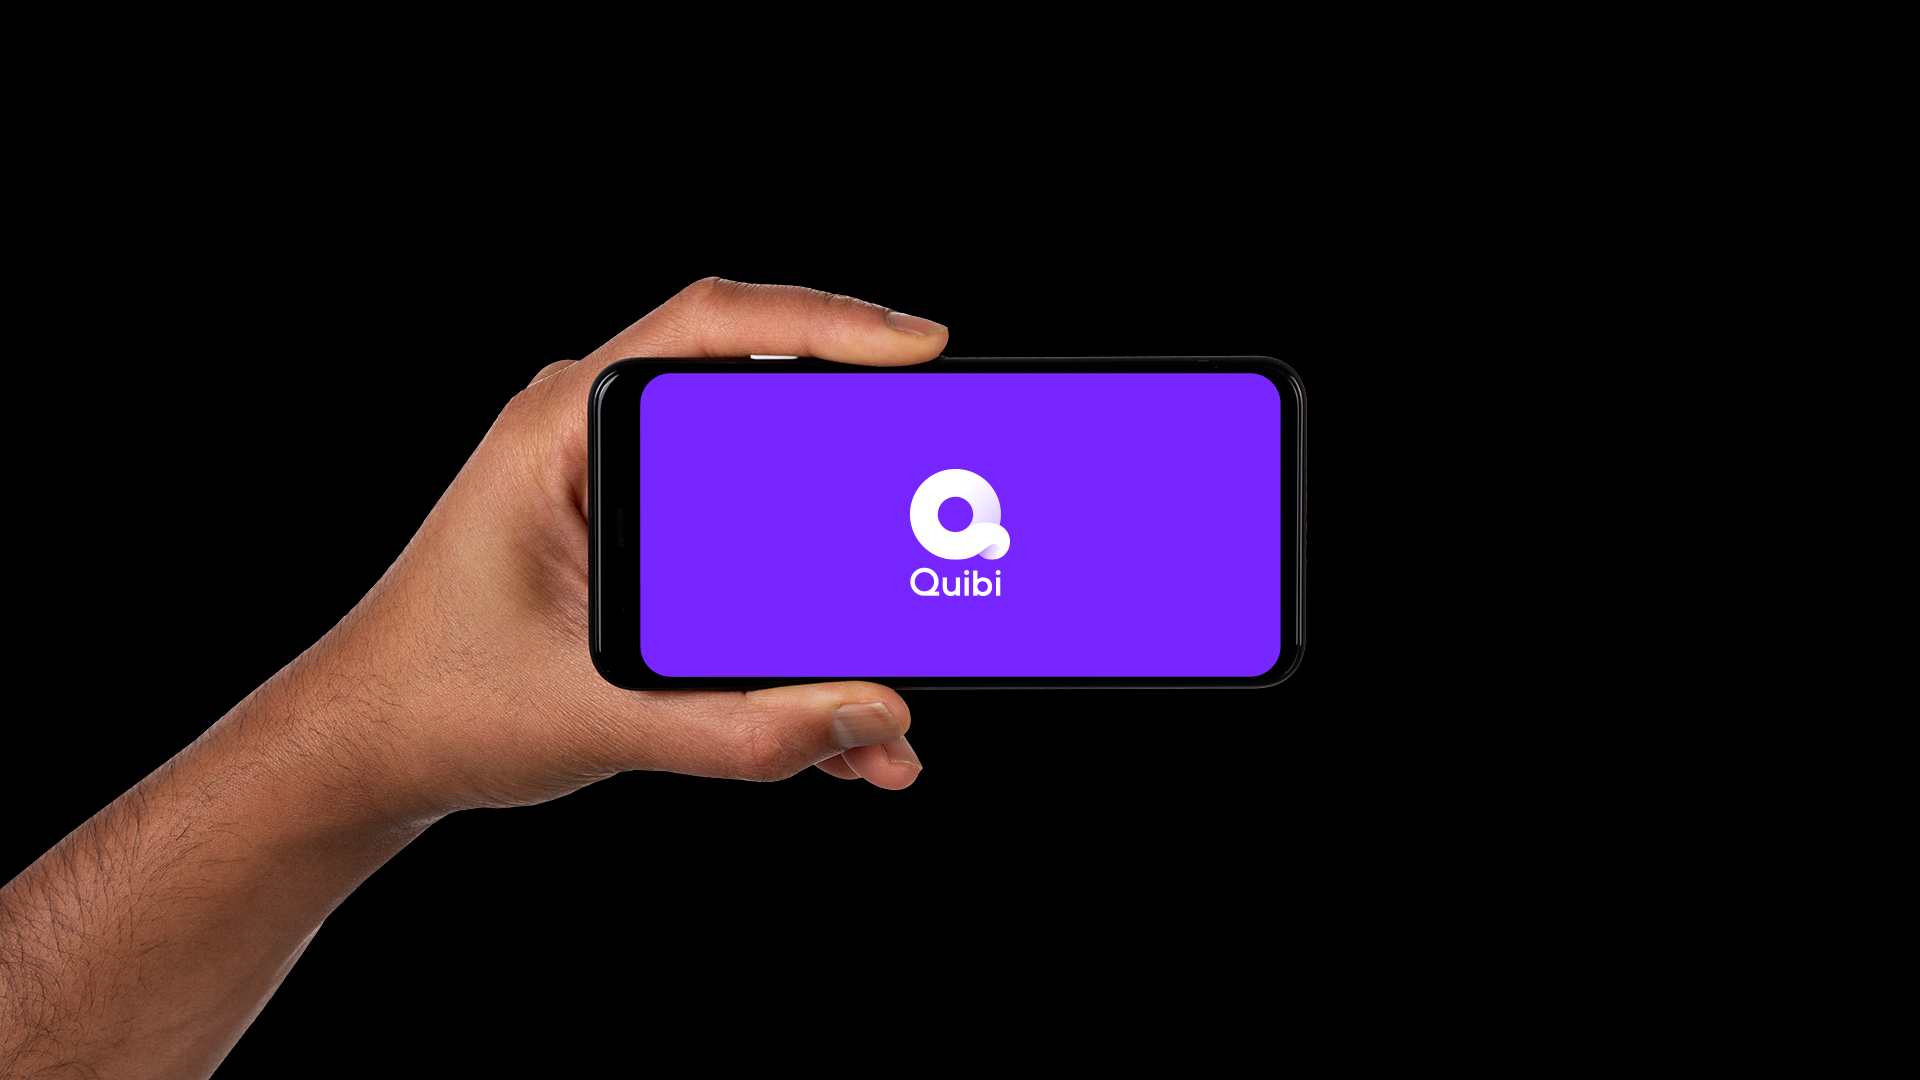 The Quibi logo is displayed on a phone held horizontally.